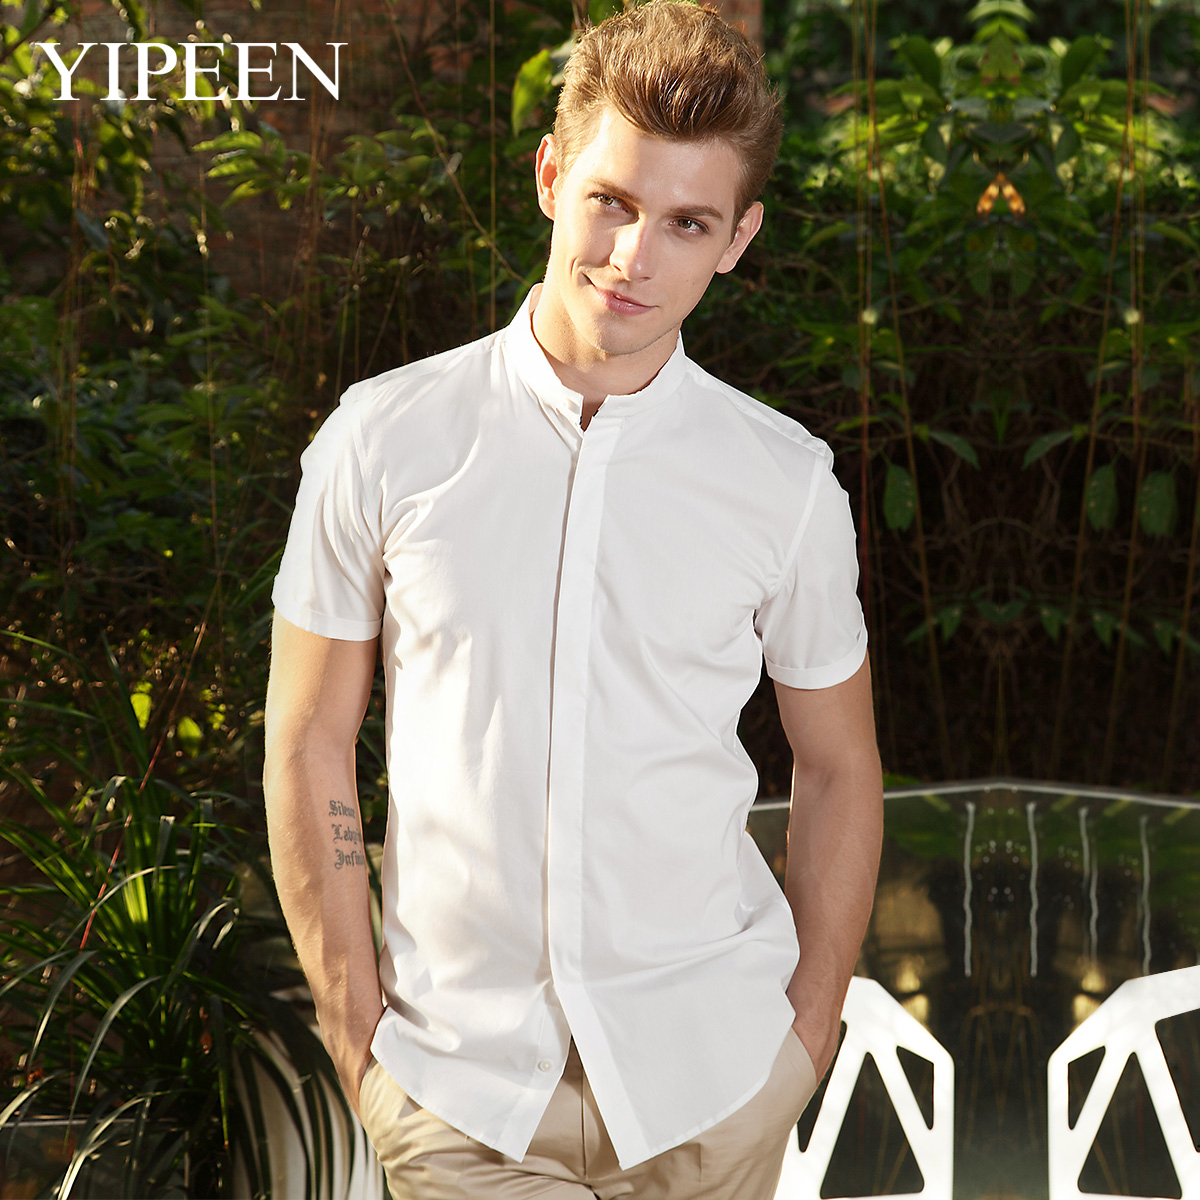 YIPEEN man shirt Summer 2014 new men's short sleeve collar white shirt